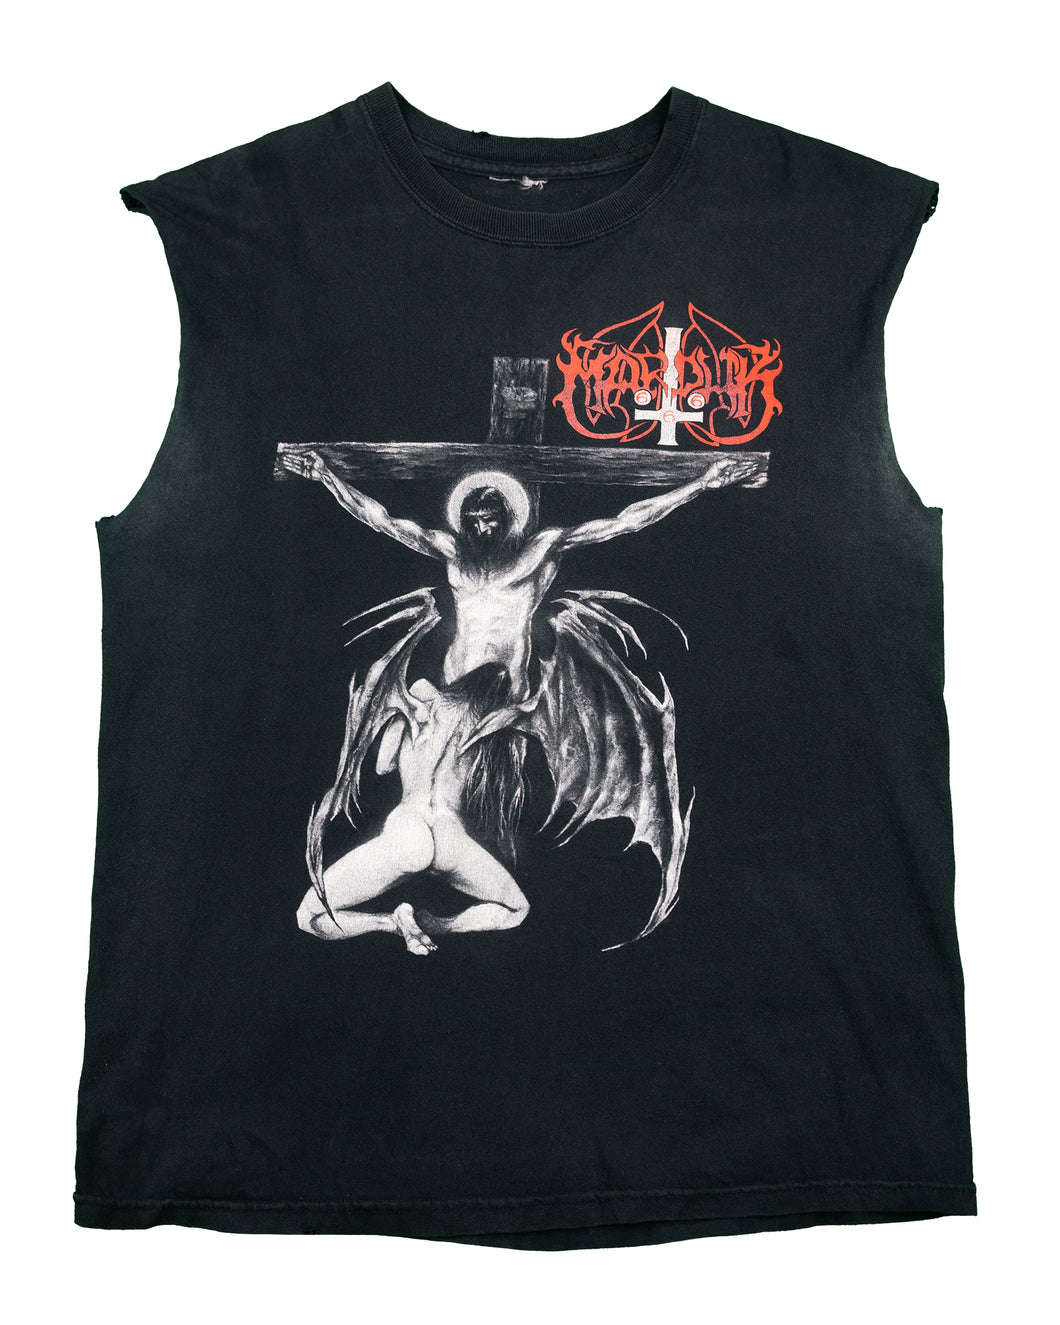 Morduck Christraping Black Metal Cut-Off Tee